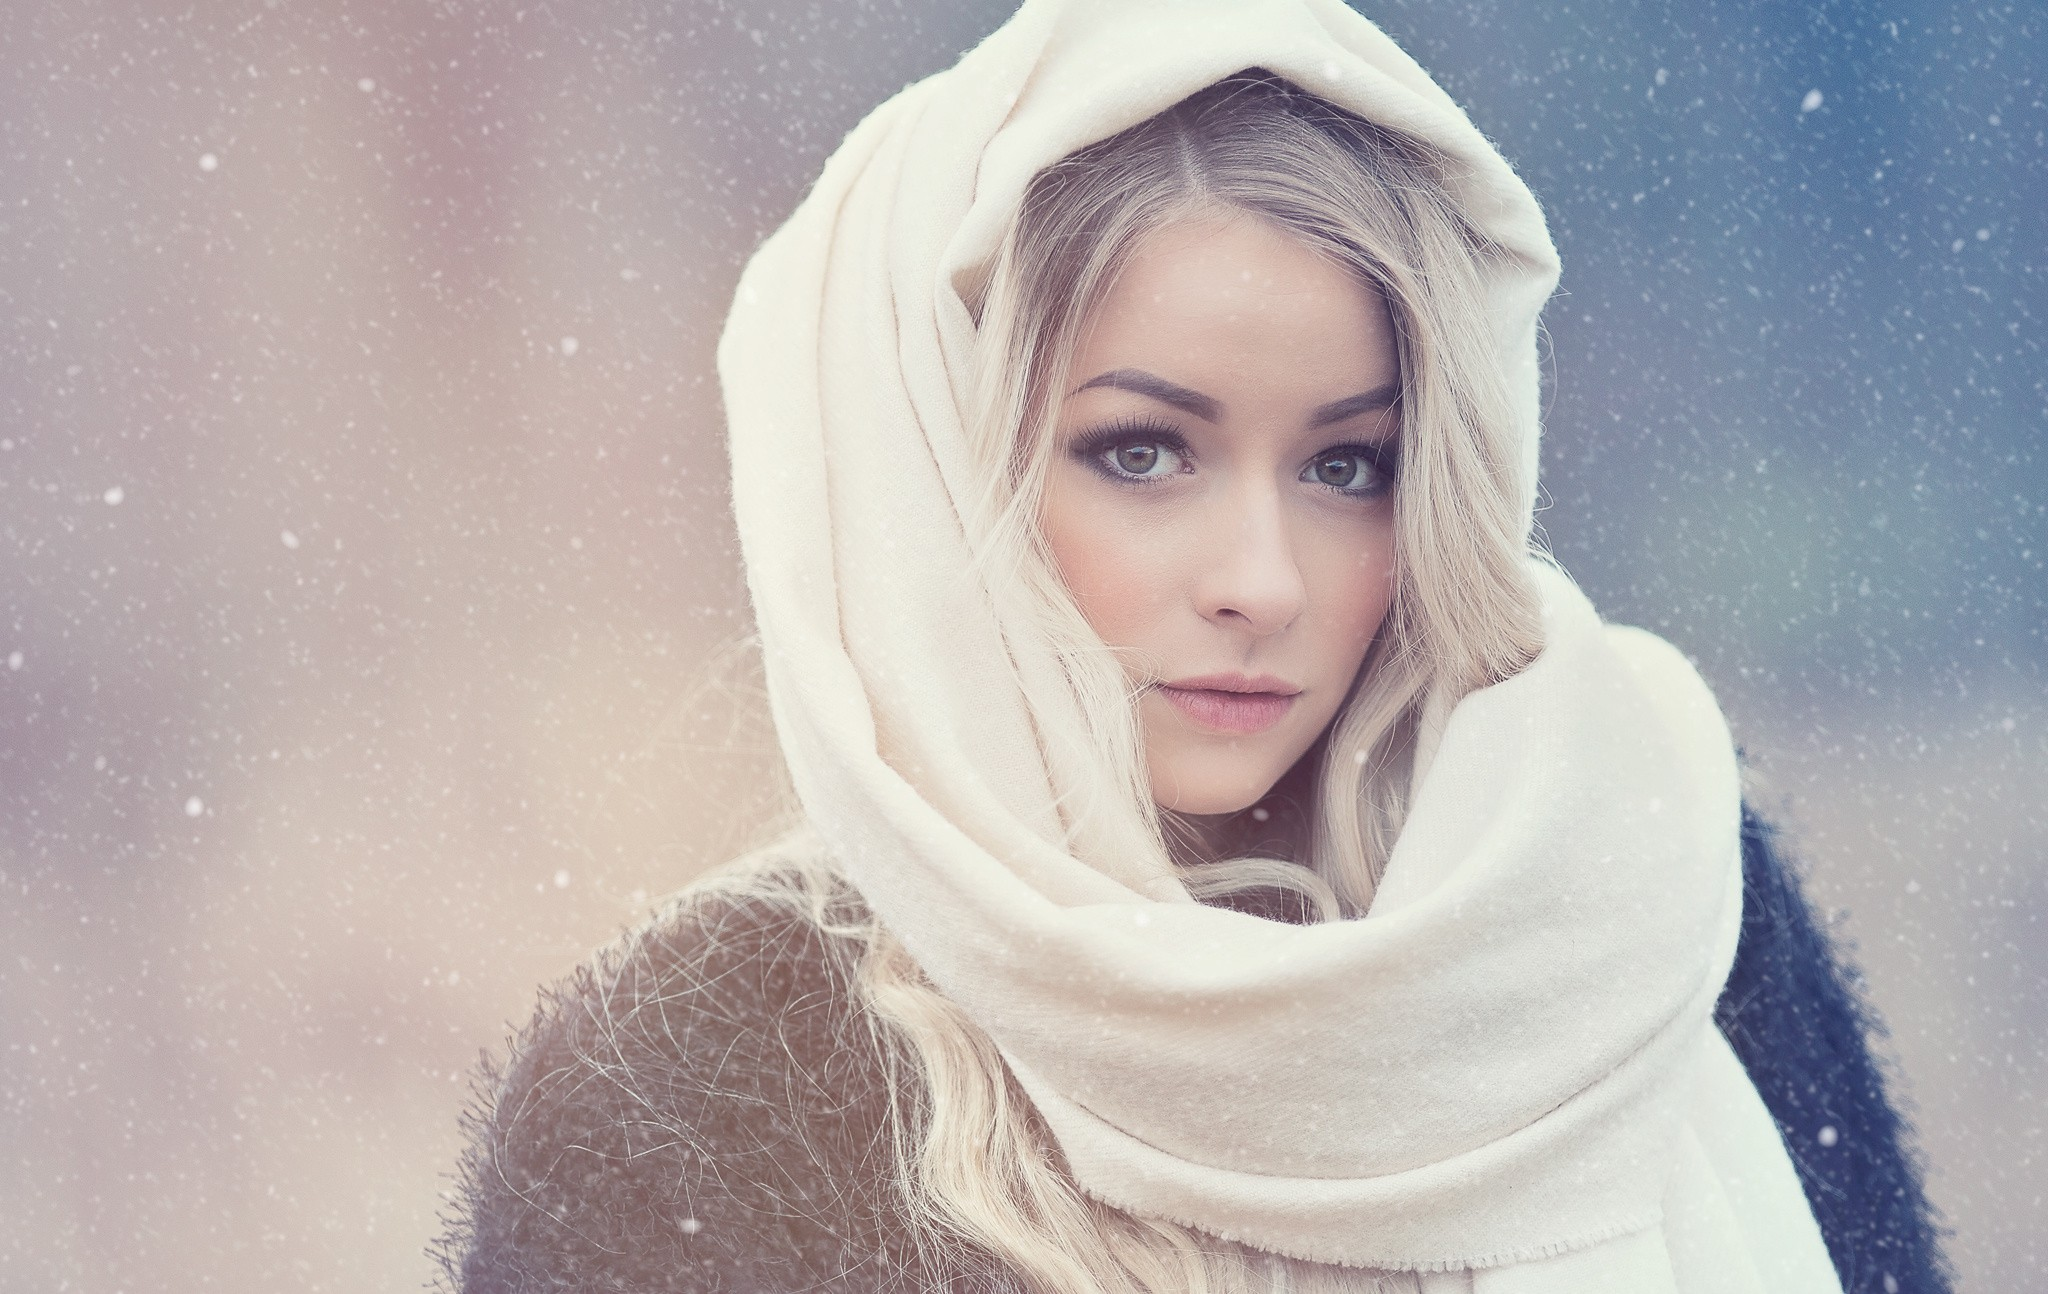 Women Blonde Cold Long Hair Looking At Viewer Snowflakes Hoods Scarf Portrait 2048x1294